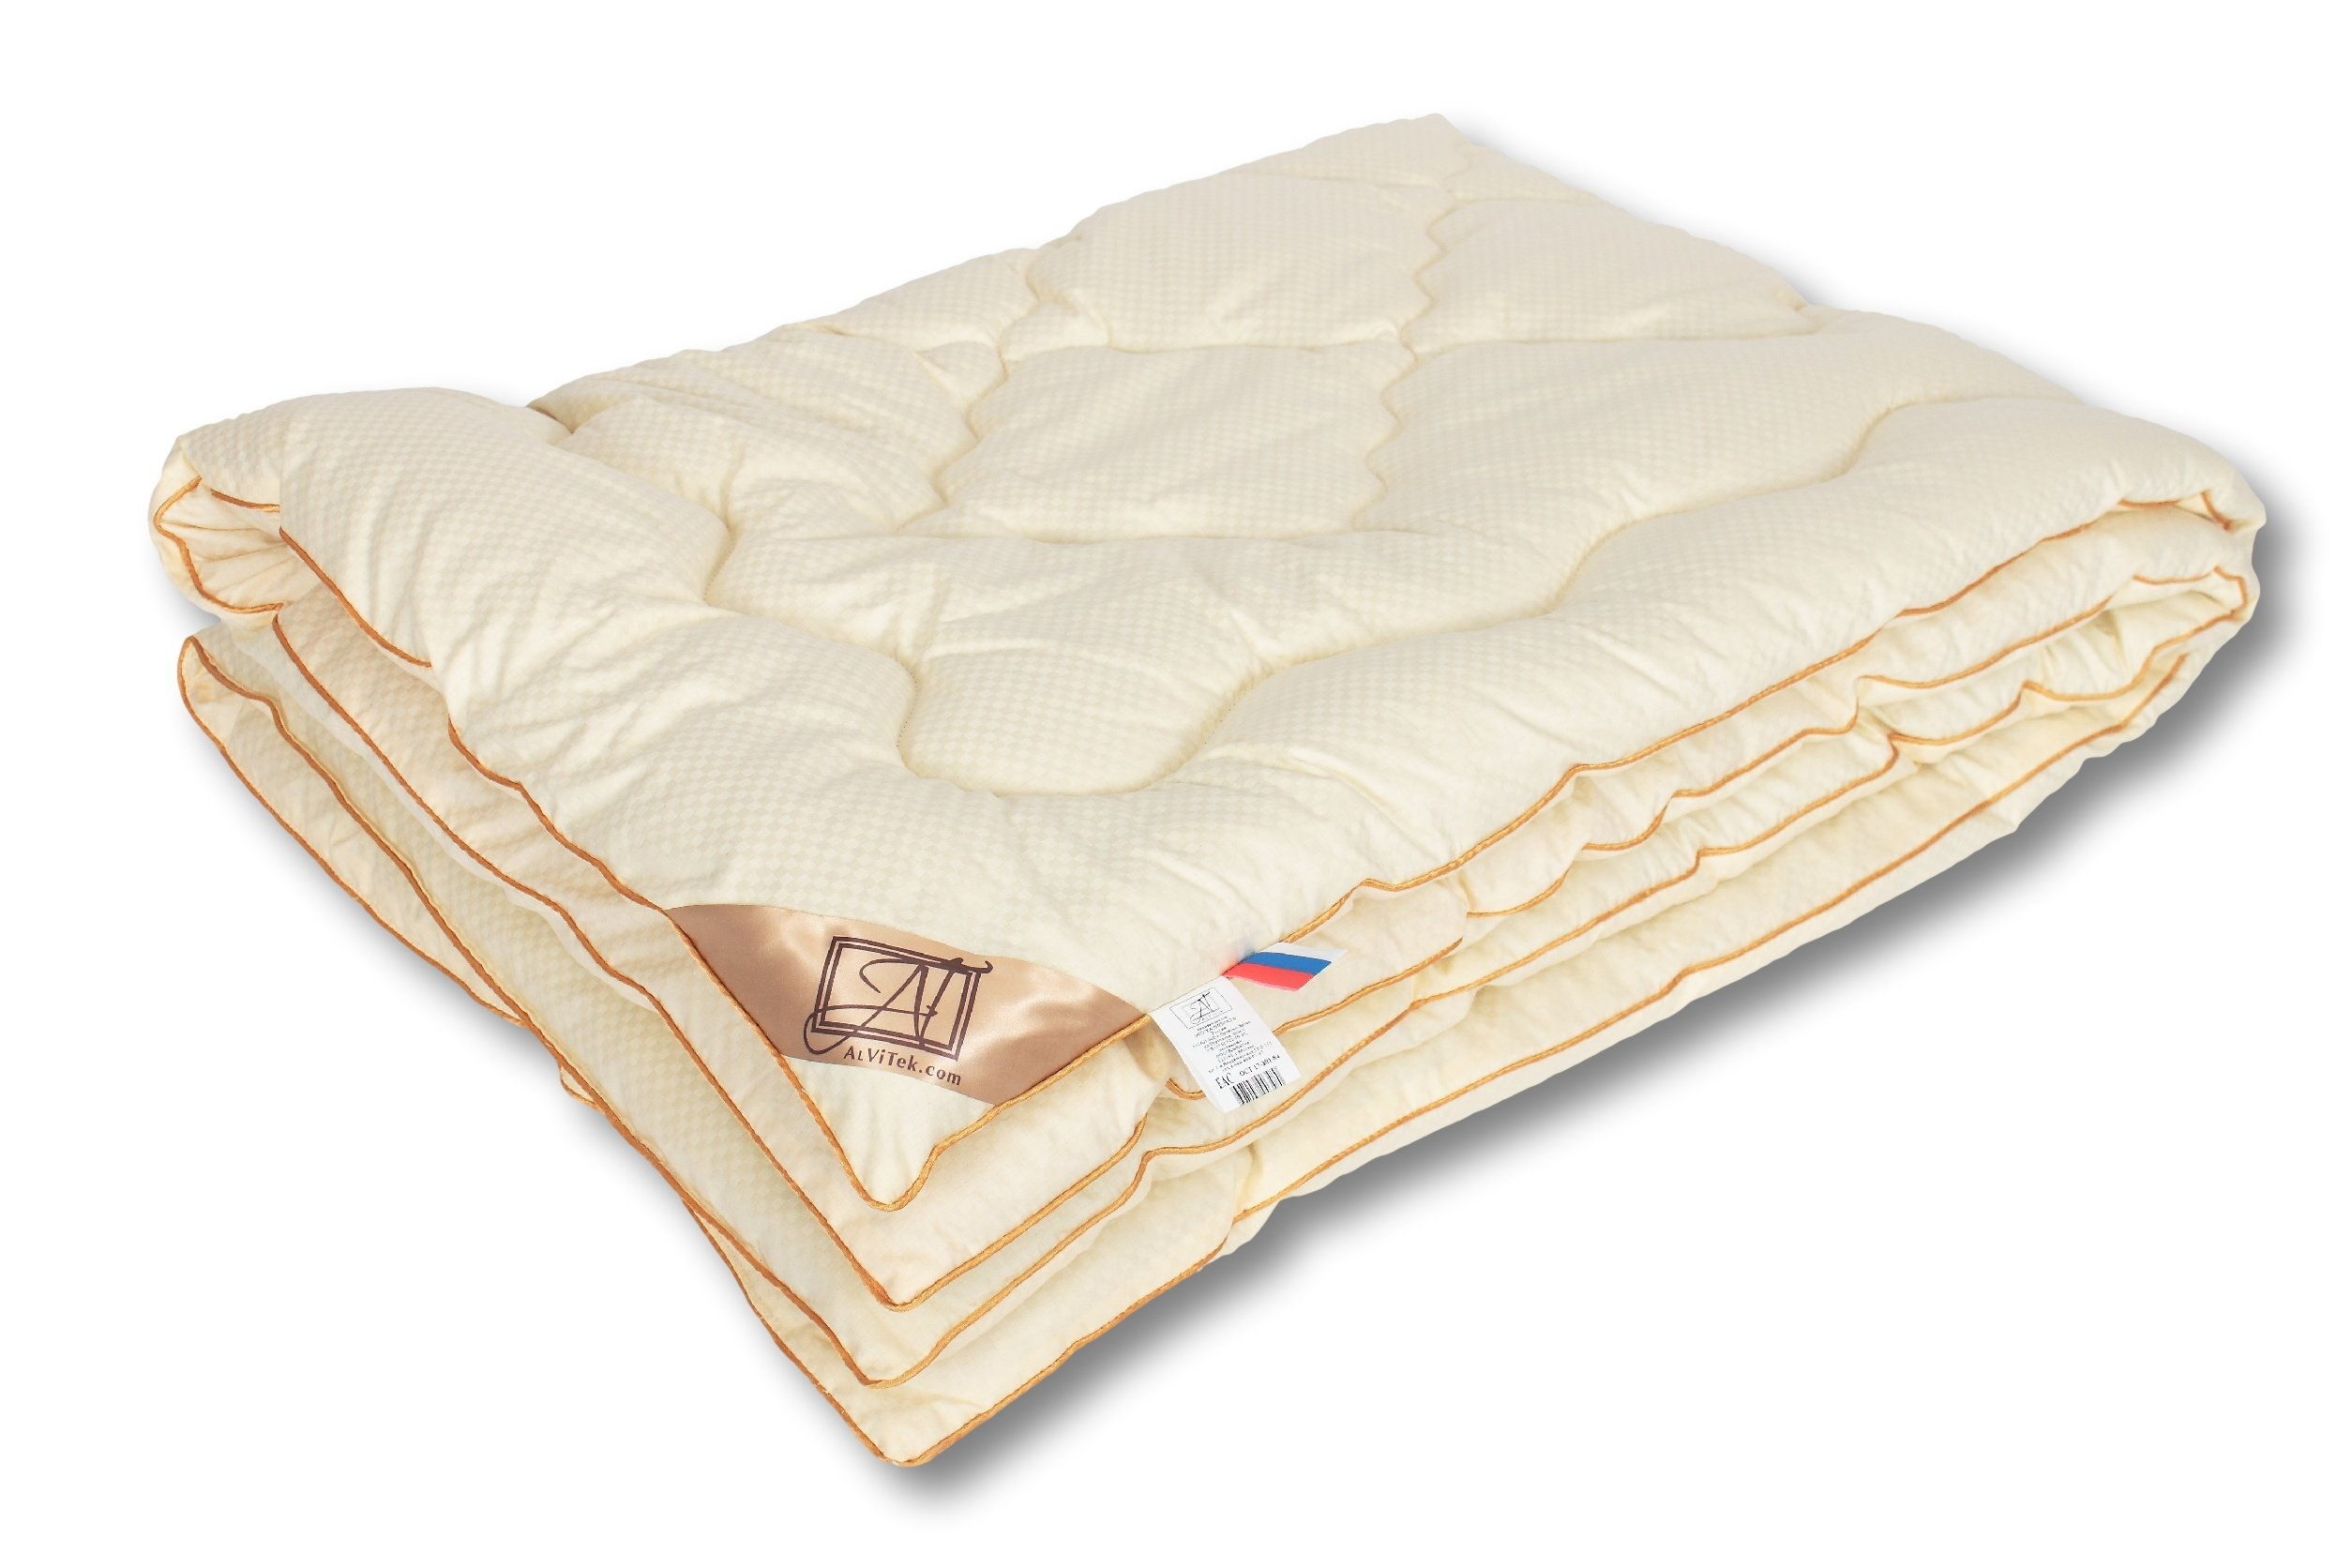 Smart And Cozy Moderatic Crib/Baby Comforter with Merino Wool, Quilted